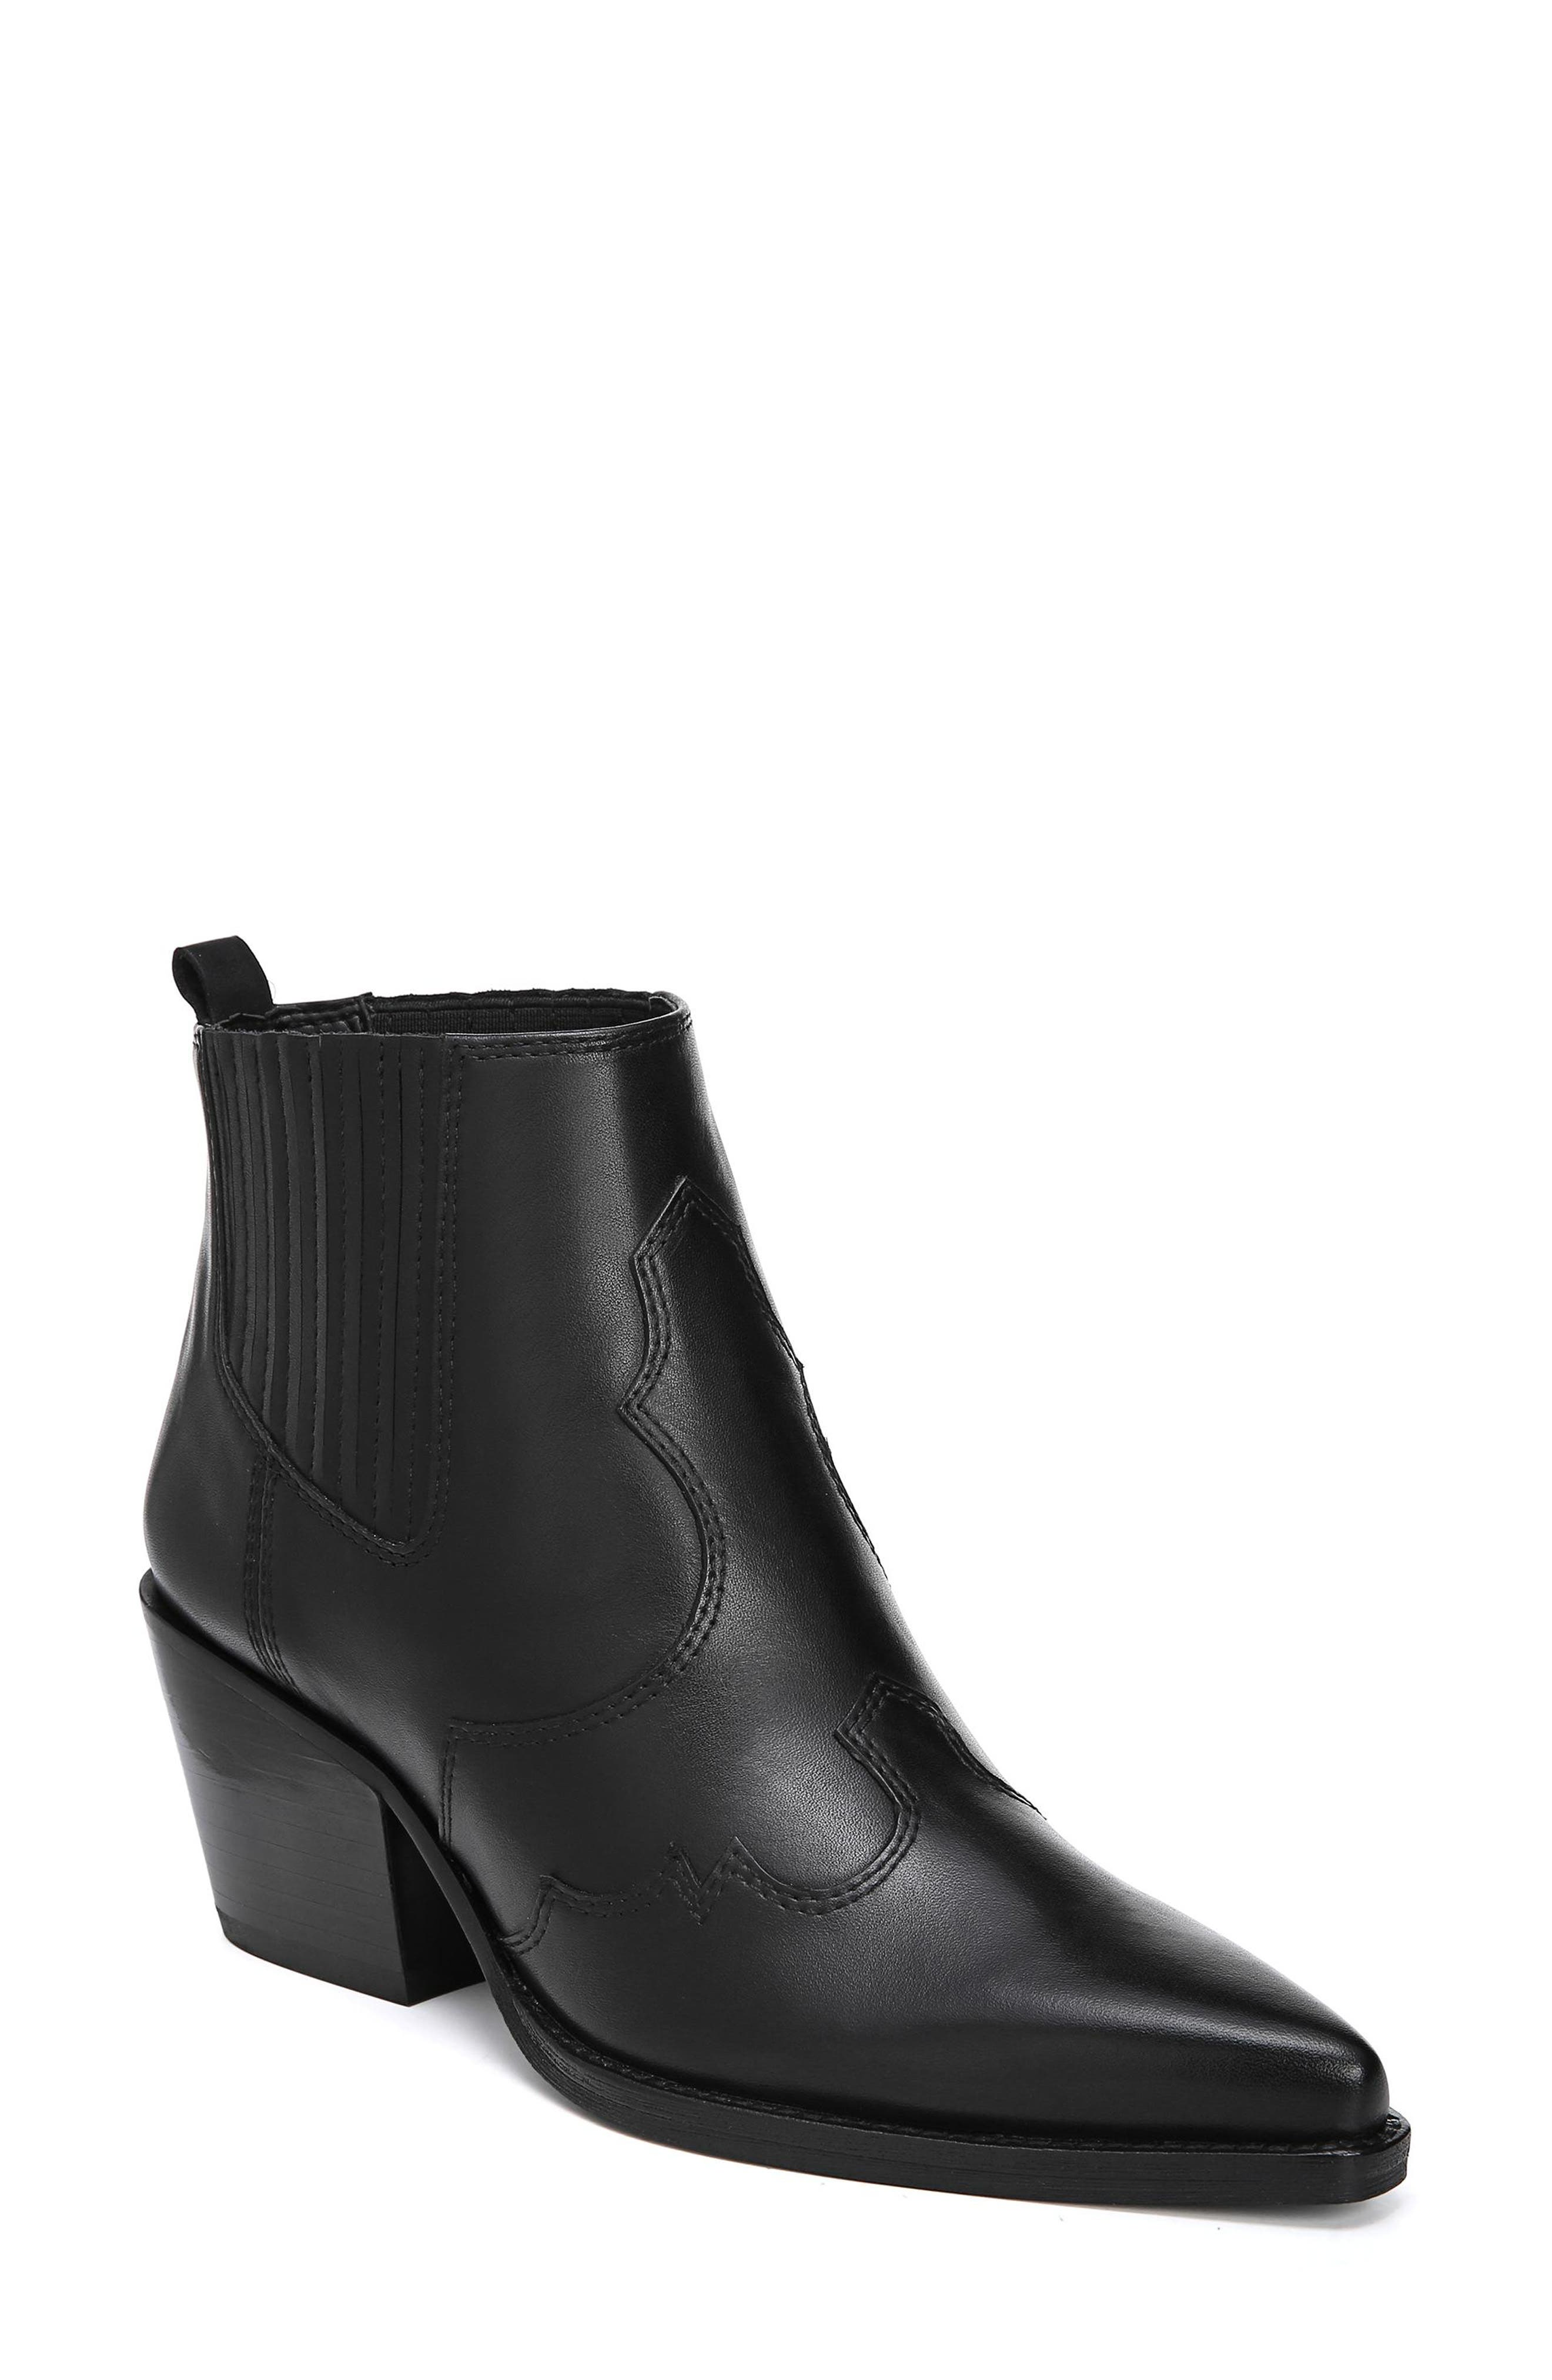 Sam Edelman Winona Genuine Calf Hair Bootie, Black